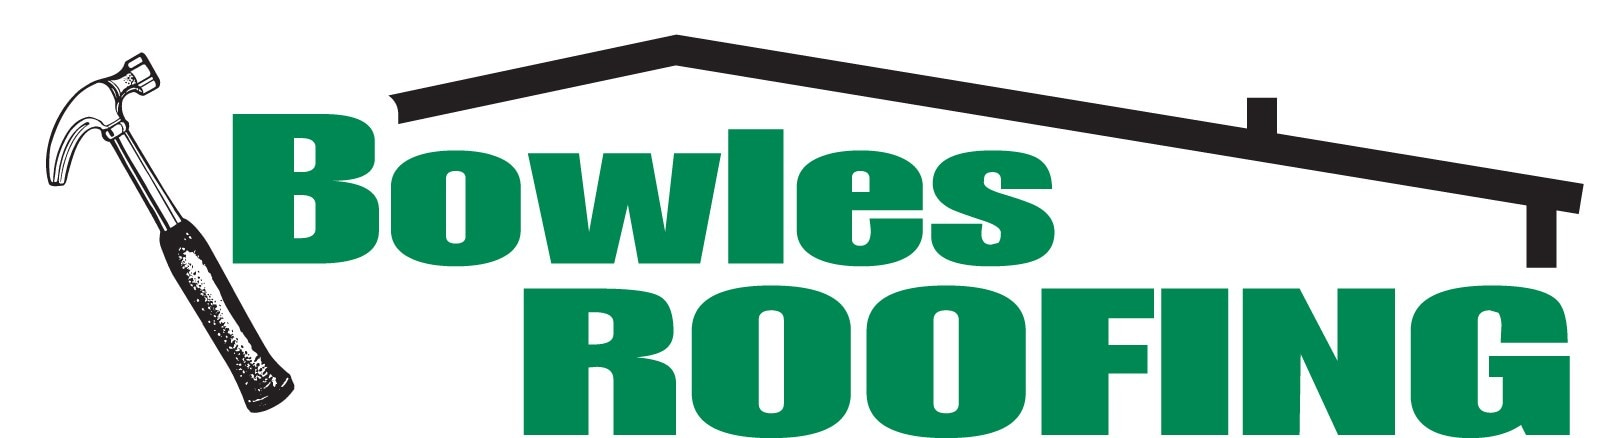 Bowles Roofing Co logo